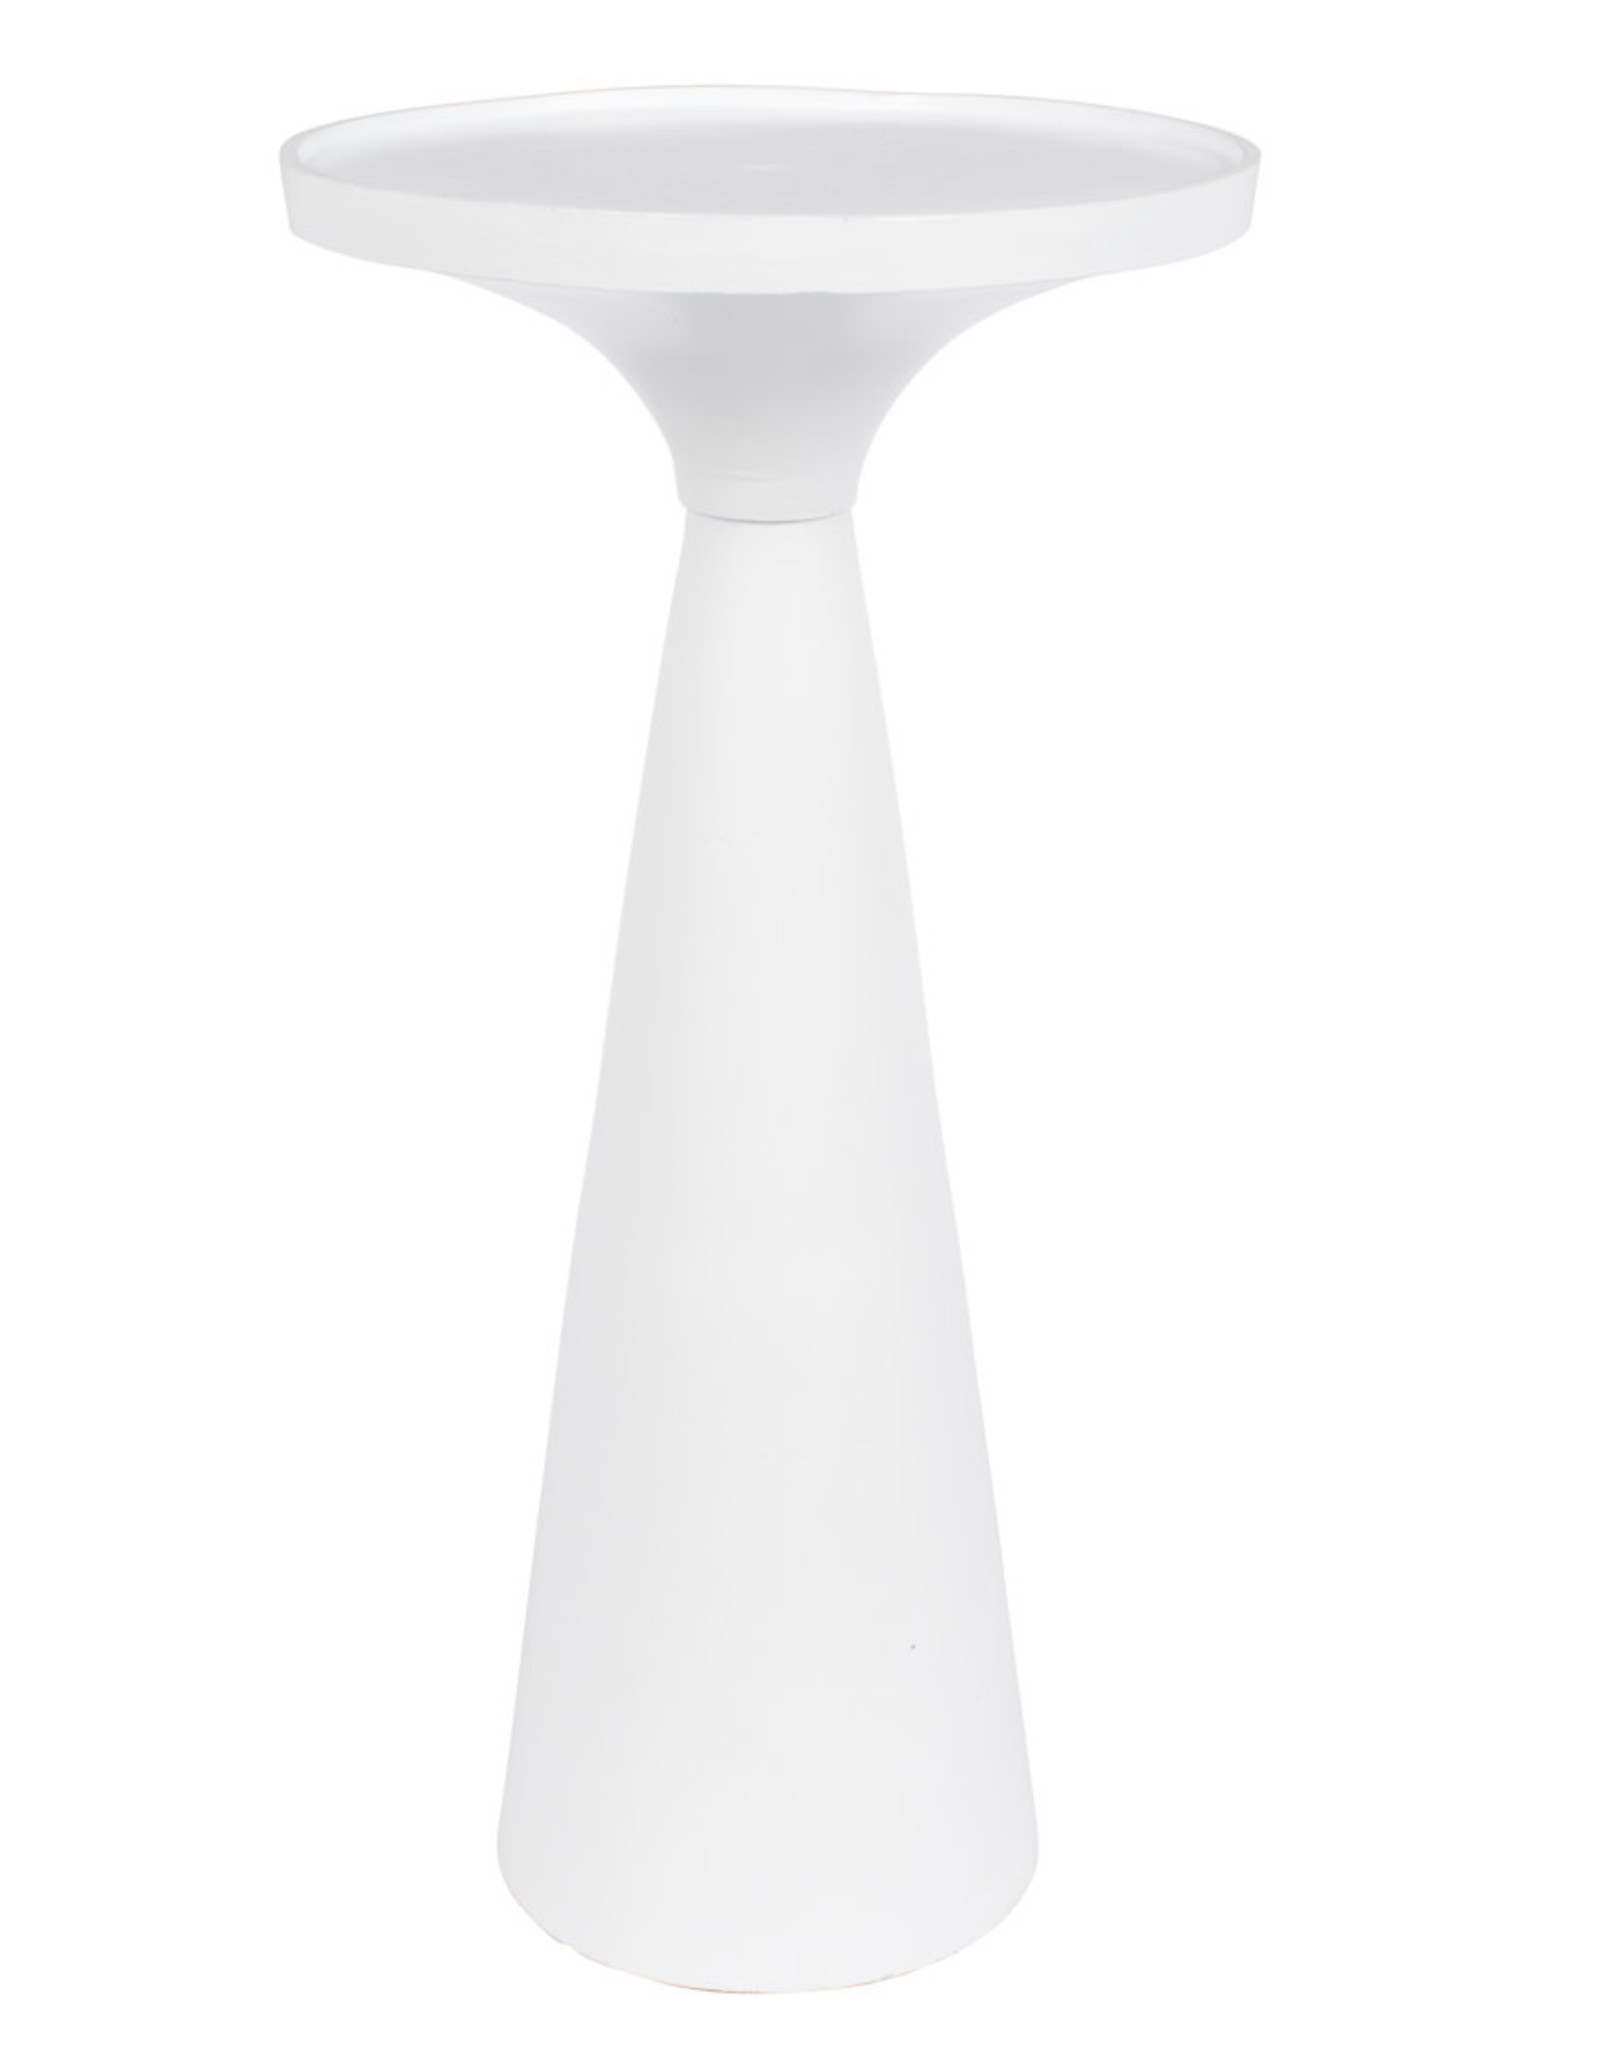 ZUIVER BV Floss Side Table